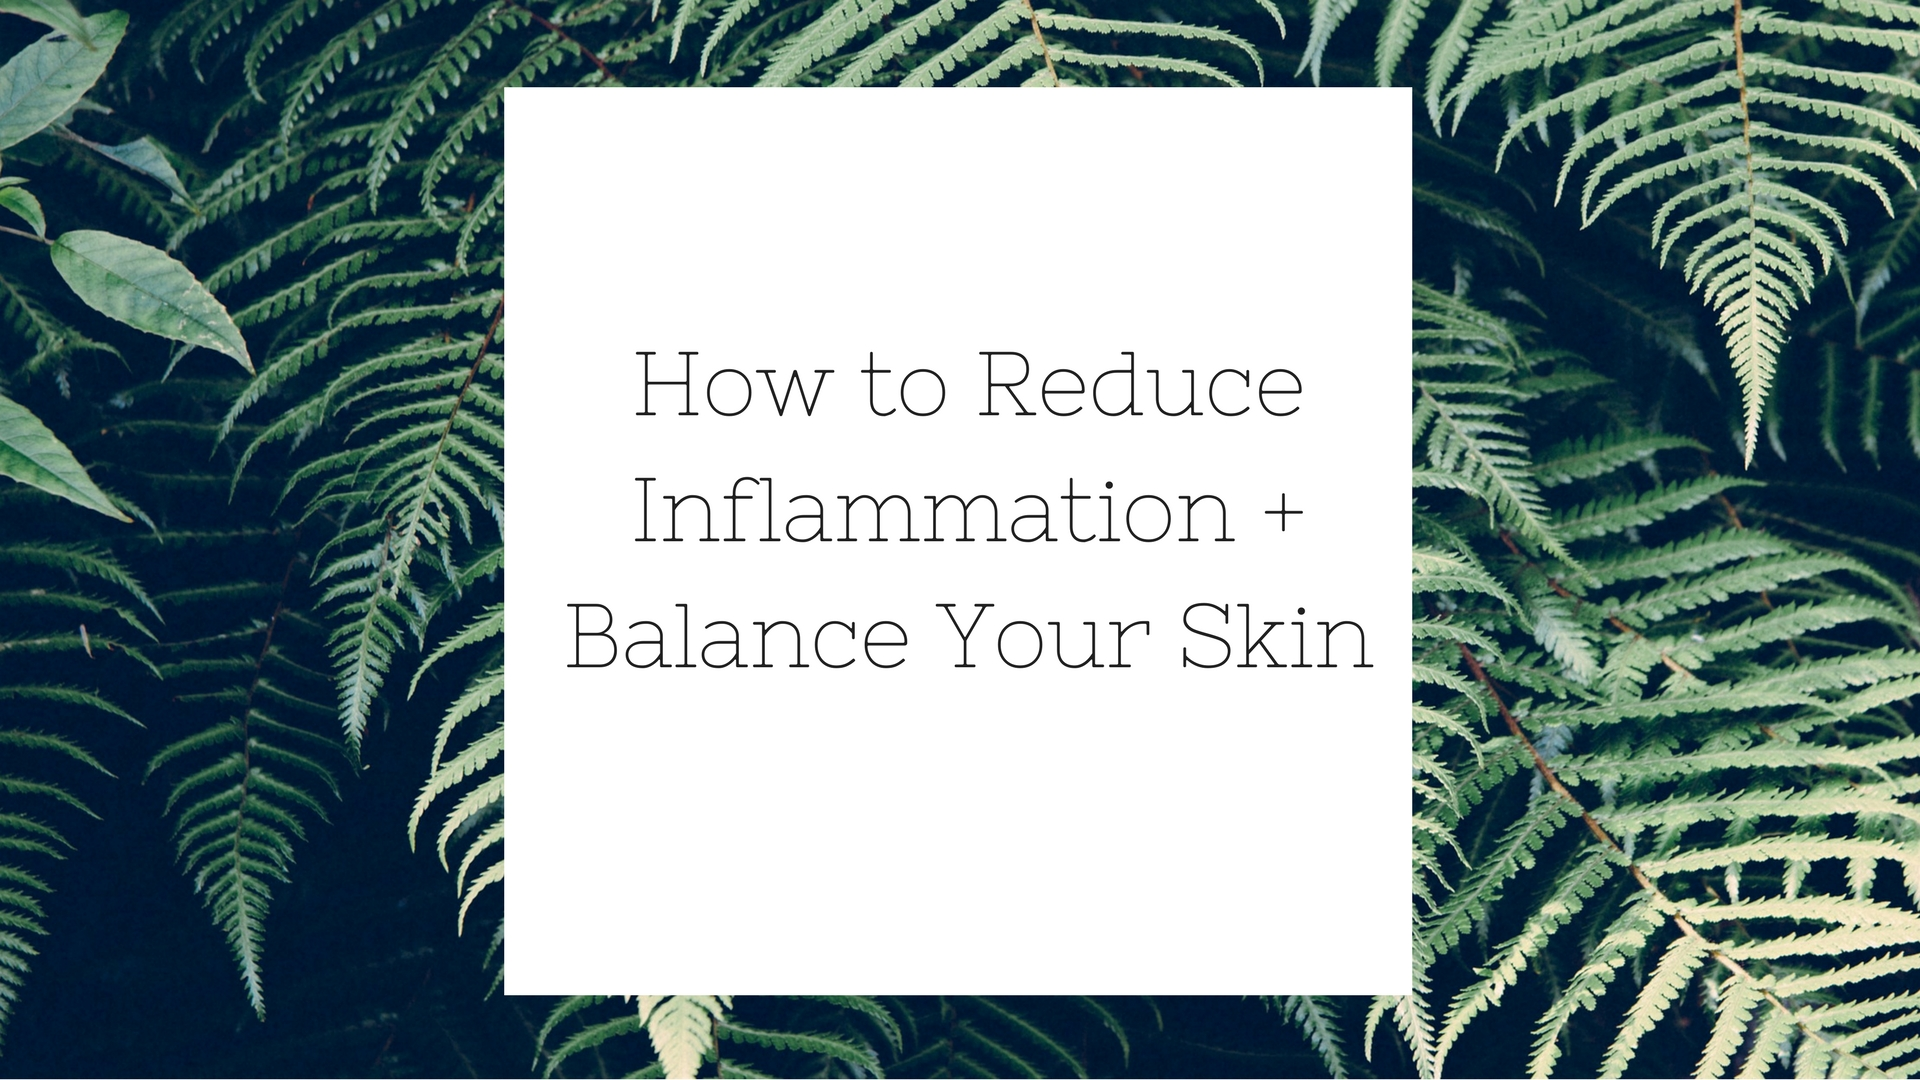 How to Reduce Inflammation + Balance Your Skin